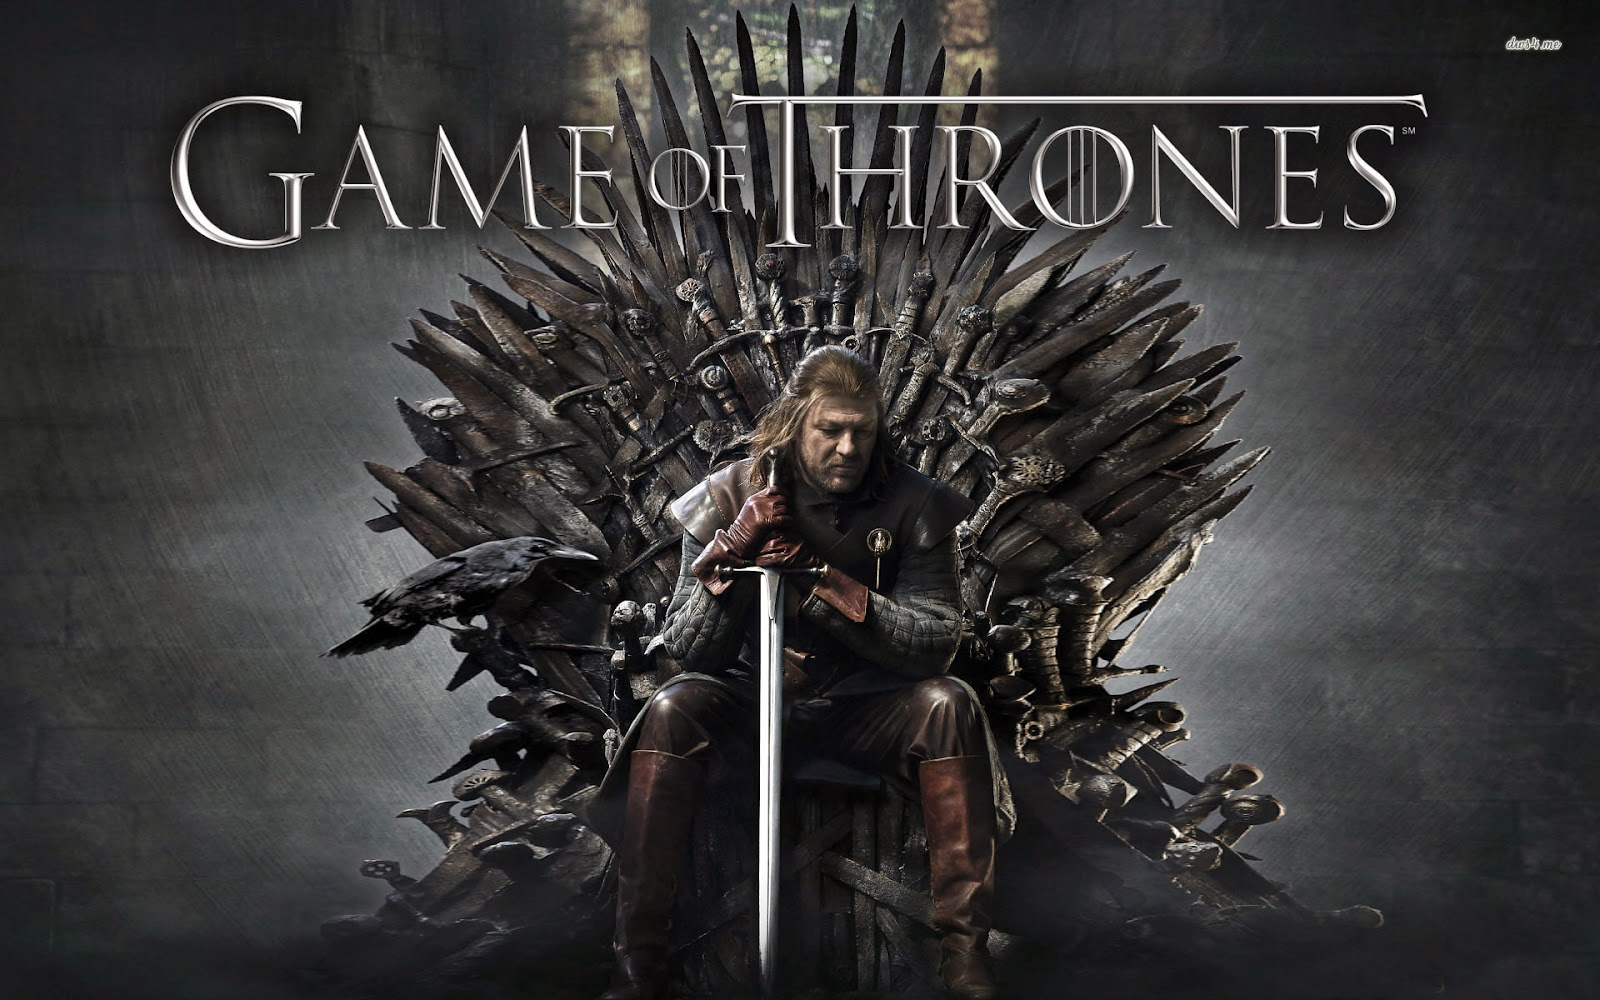 ned stark game of thrones saison 4 enfin la!